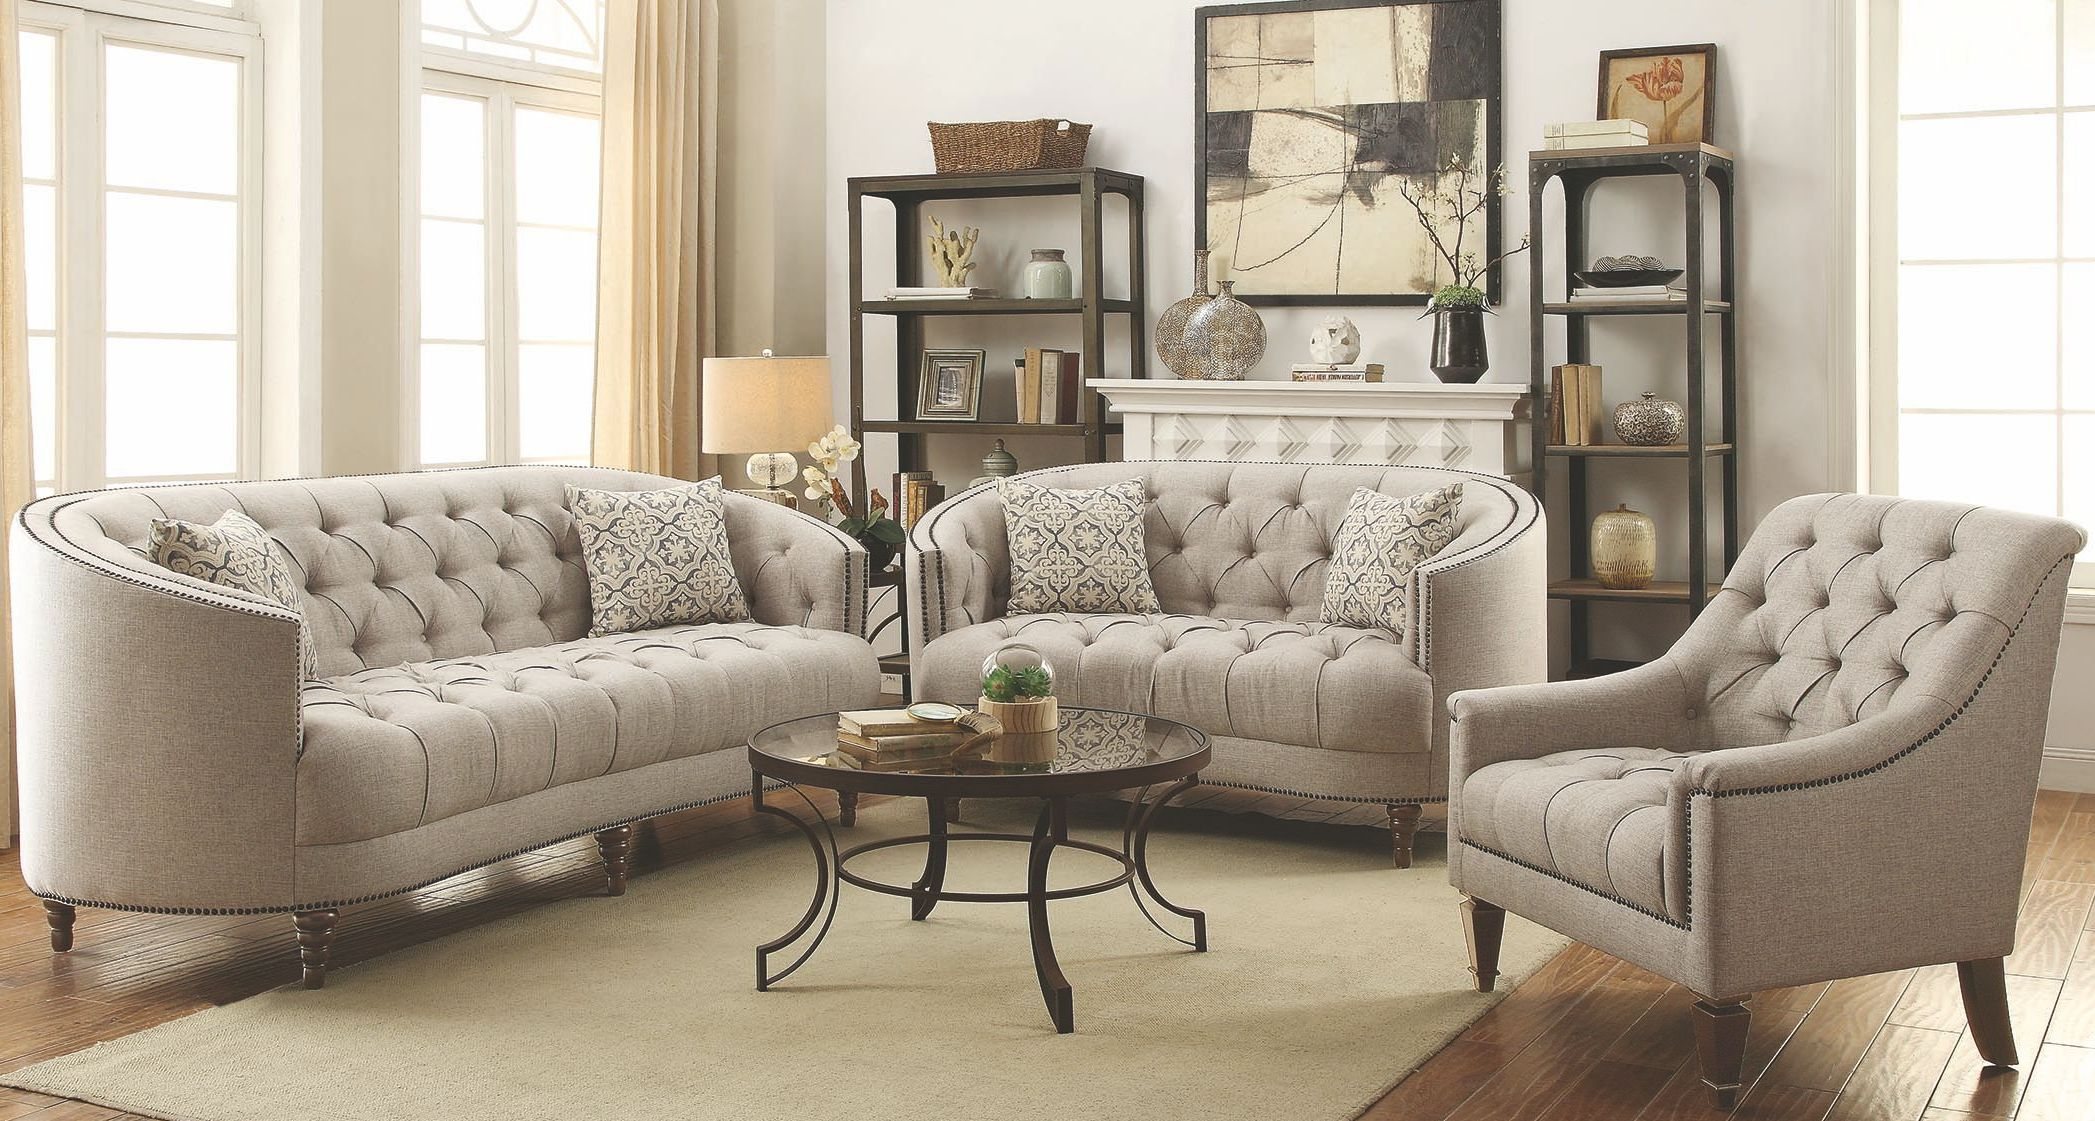 Coaster Avonlea Stone Grey Living Room Set Avonlea Collection 15 with 14 Awesome Concepts of How to Make Living Rooms Sets